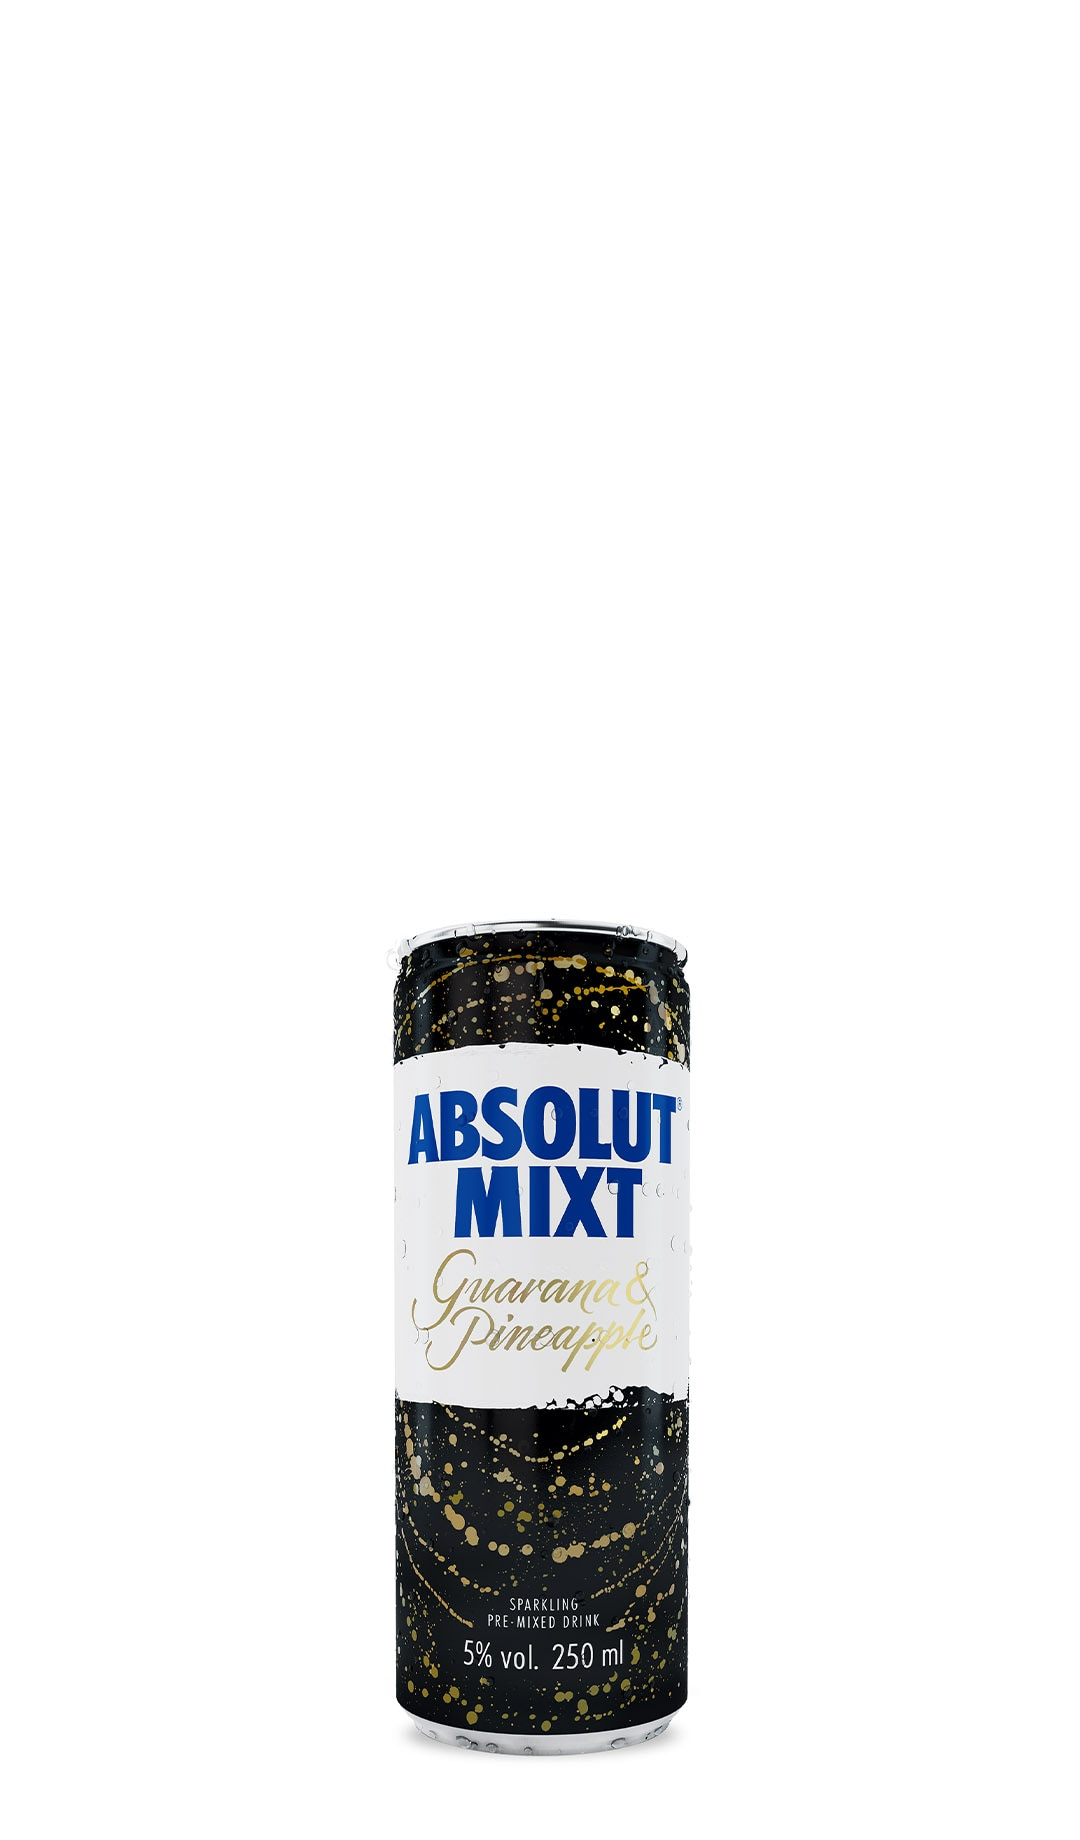 Absolut Mixt Guarana & Pineapple